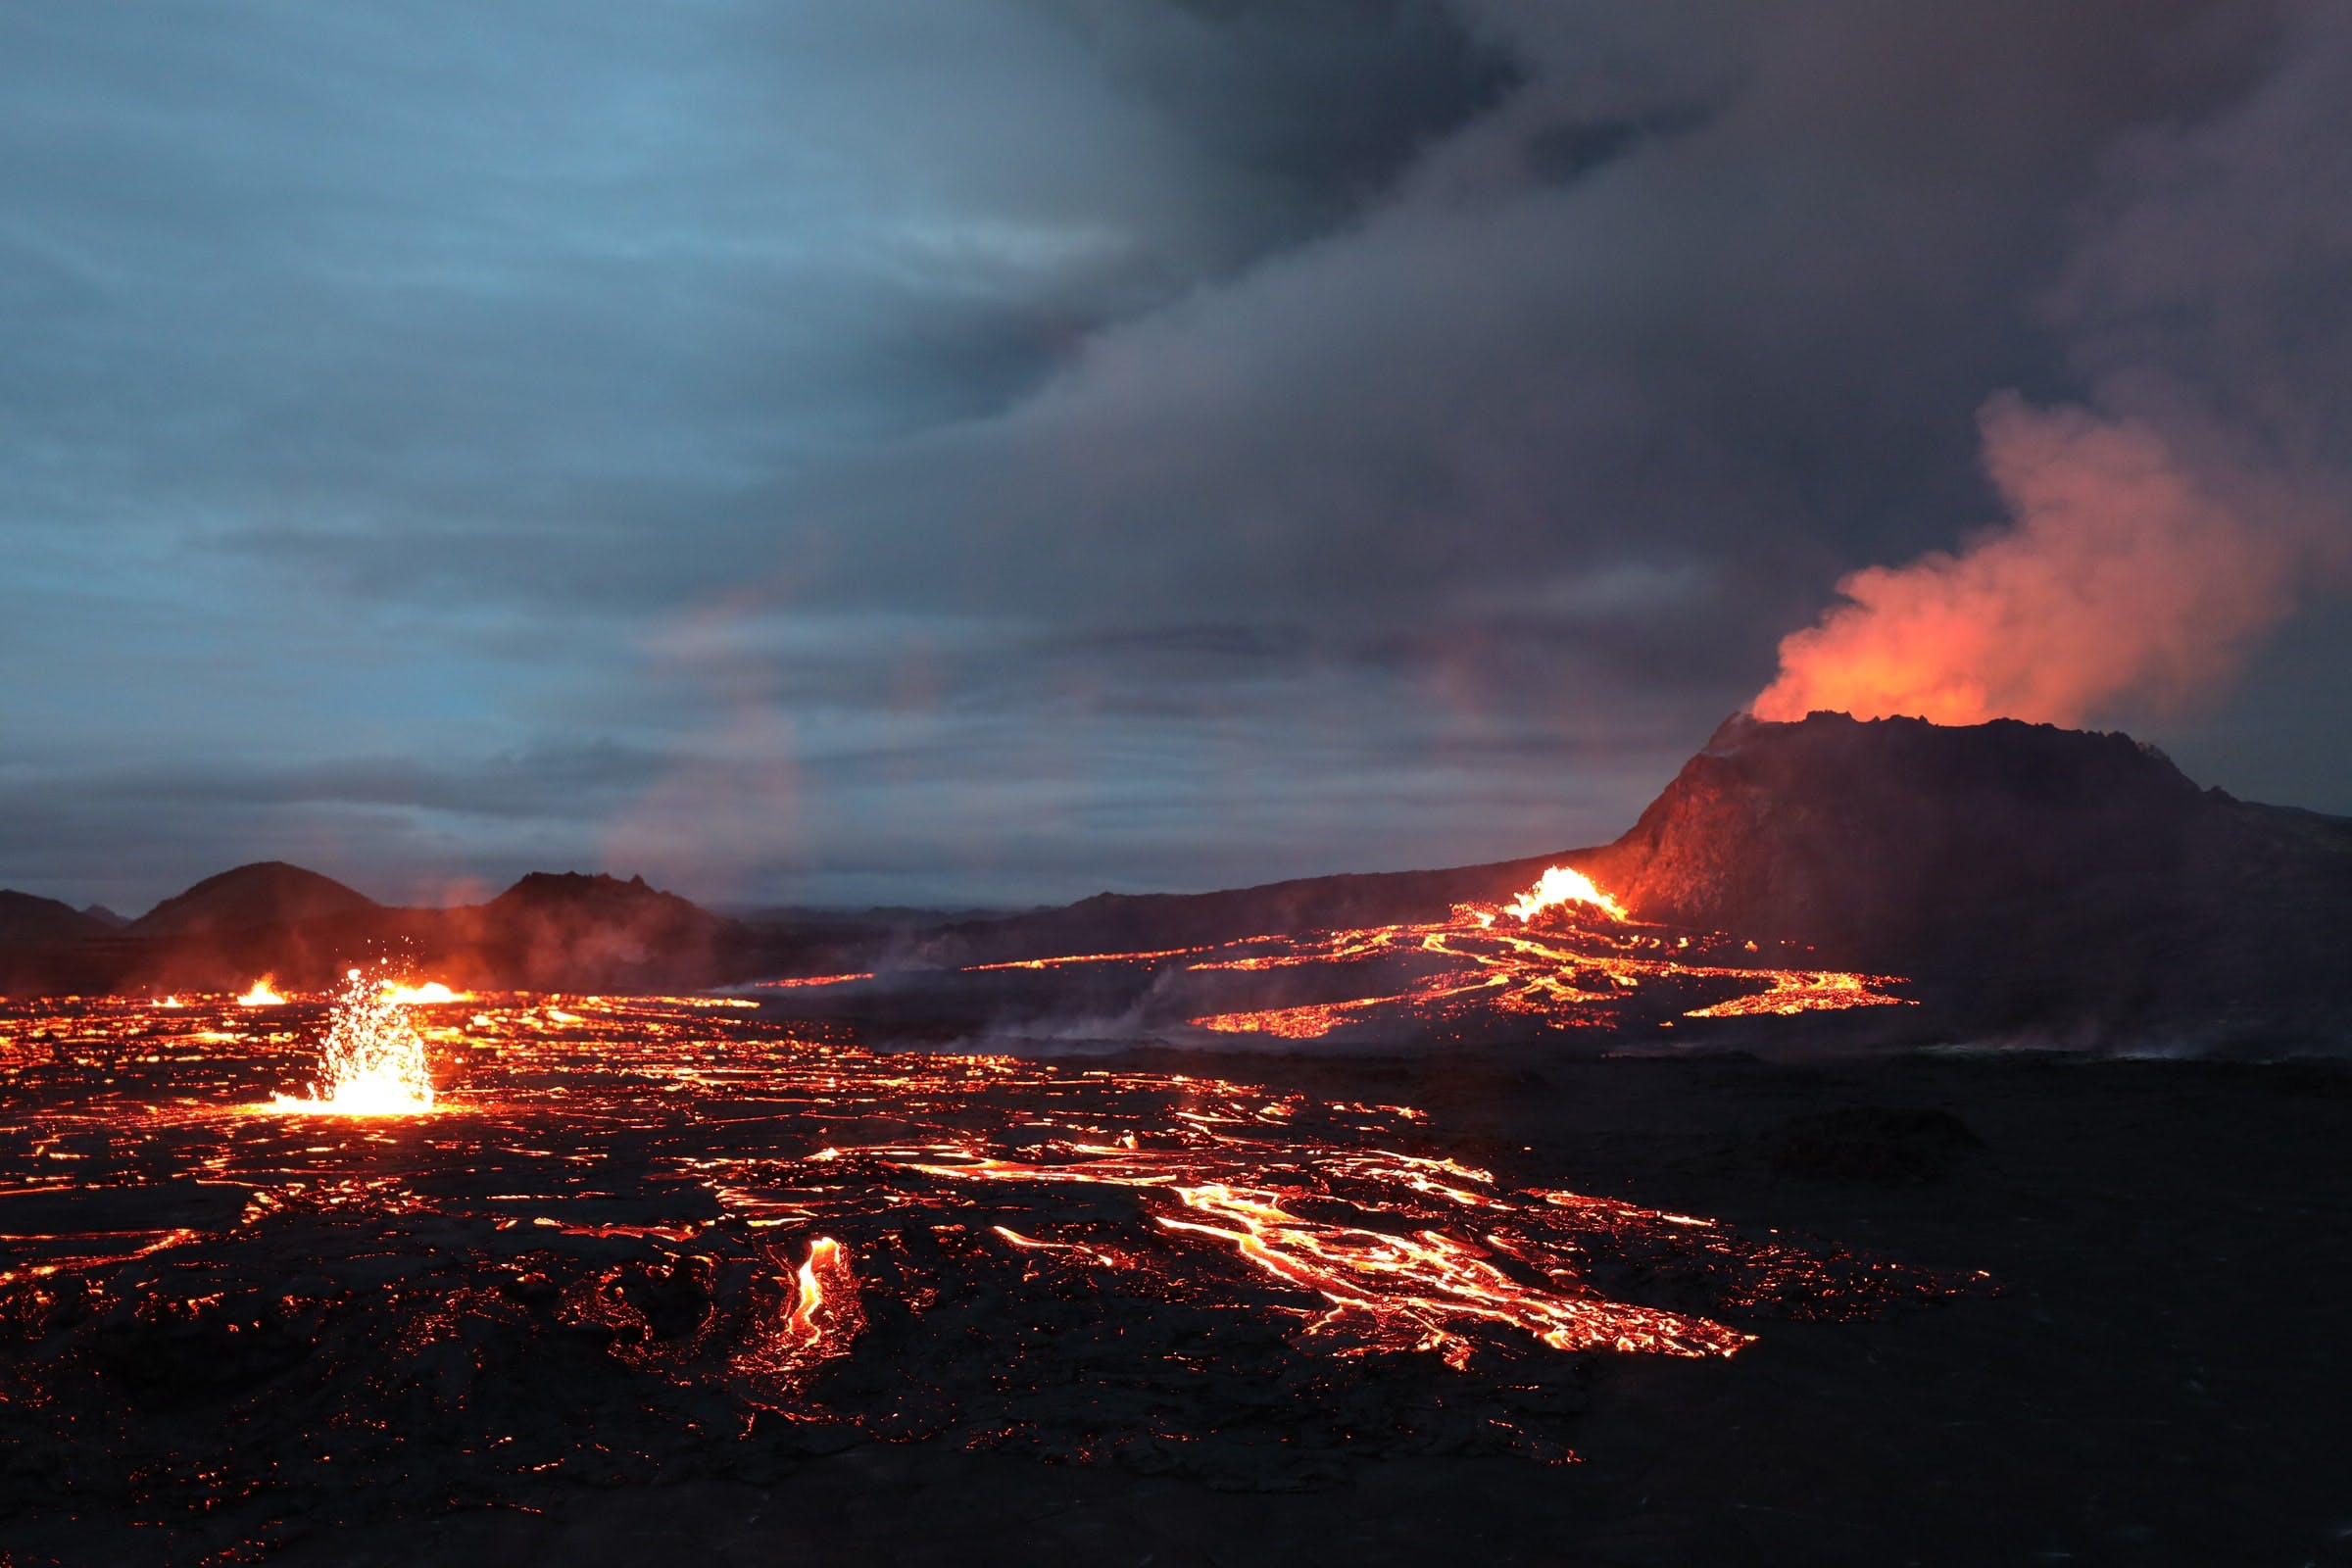 Erupting crater and flowing lava